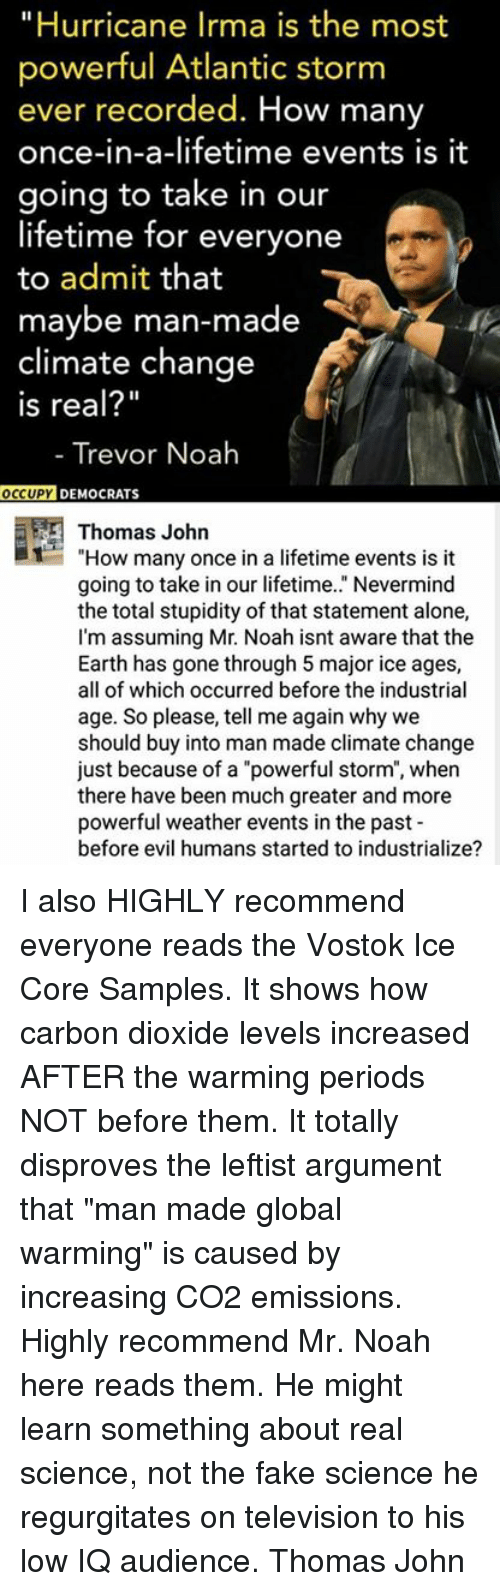 """Argumenting: """"Hurricane Irma is the most  powerful Atlantic storm  ever recorded. How many  once-in-a-lifetime events is it  going to take in our  lifetime for everyone  to admit that  maybe man-made  climate change  Is real?""""  - Trevor Noah  OC  CUPY DEMOCRATS  Thomas John  1""""How many once in a lifetime events is it  going to take in our lifetime.."""" Nevermind  the total stupidity of that statement alone,  I'm assuming Mr. Noah isnt aware that the  Earth has gone through 5 major ice ages,  all of which occurred before the industrial  age. So please, tell me again why we  should buy into man made climate change  just because of a """"powerful storm"""", when  there have been much greater and more  powerful weather events in the past  before evil humans started to industrialize? I also HIGHLY recommend everyone reads the Vostok Ice Core Samples. It shows how carbon dioxide levels increased AFTER the warming periods NOT before them. It totally disproves the leftist argument that """"man made global warming"""" is caused by increasing CO2 emissions. Highly recommend Mr. Noah here reads them. He might learn something about real science, not the fake science he regurgitates on television to his low IQ audience.  Thomas John"""